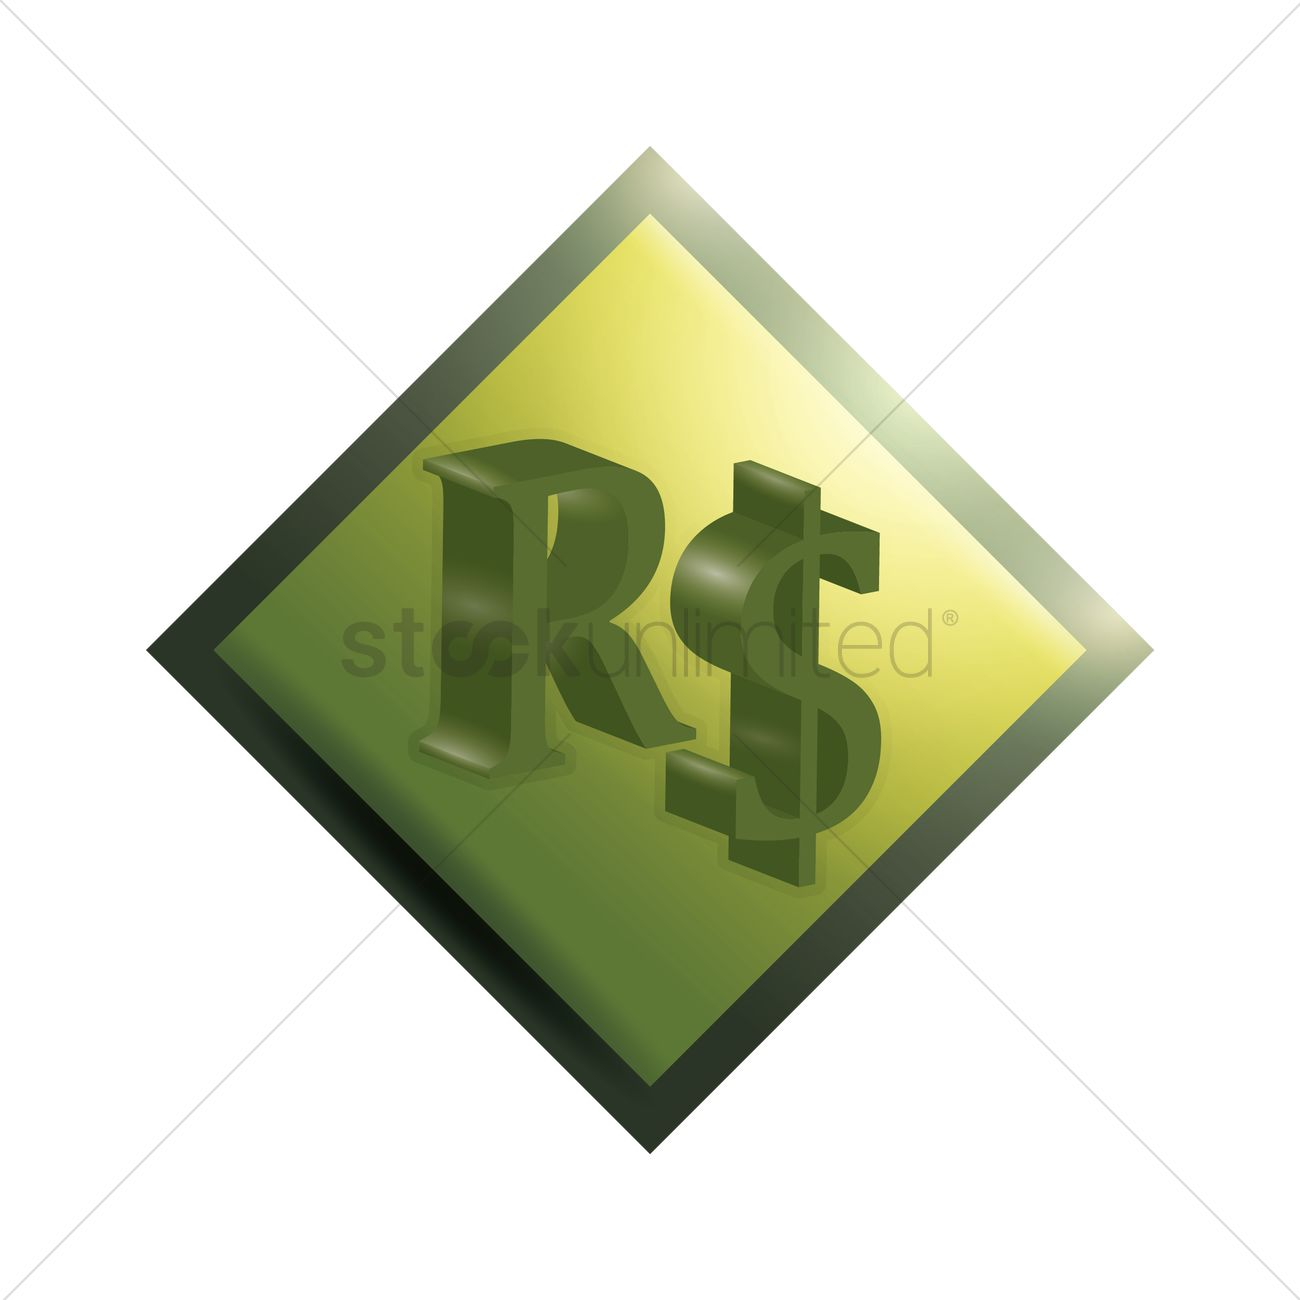 Brazilian Real Symbol Vector Image 1632018 Stockunlimited